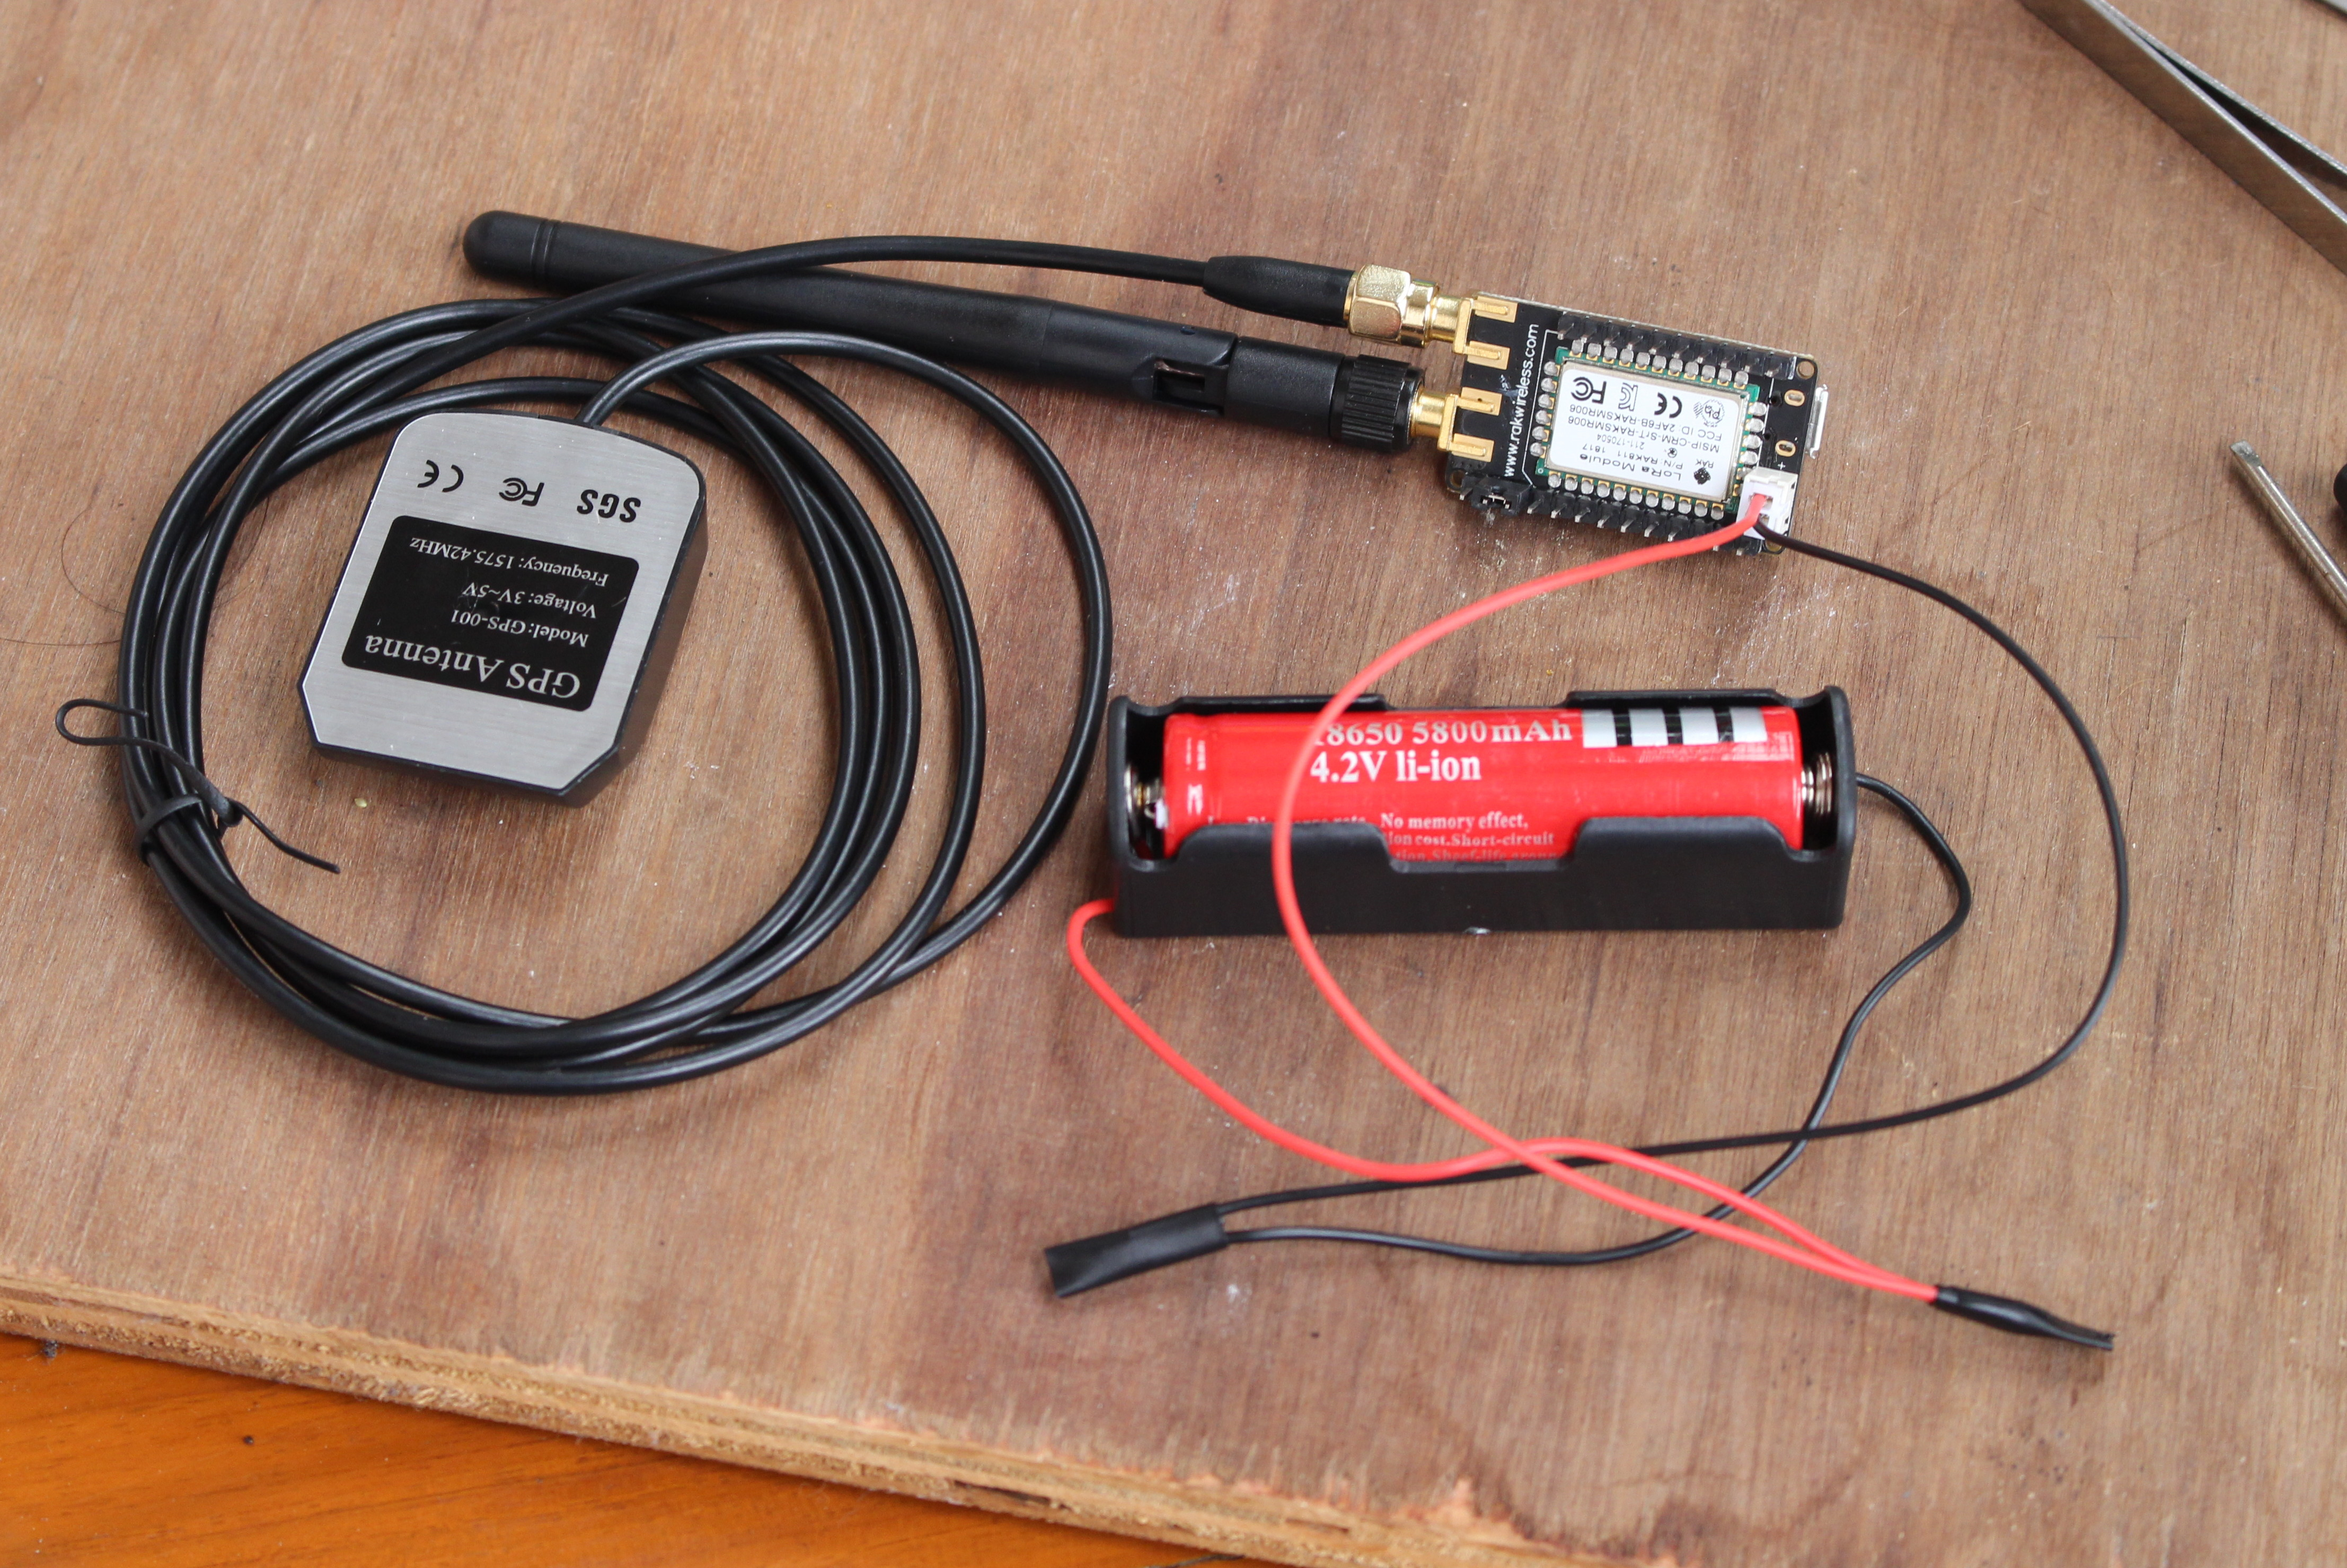 AS923 LoRa GPS Tracking with MatchX MatchBox Gateway and RAK811 LoRa